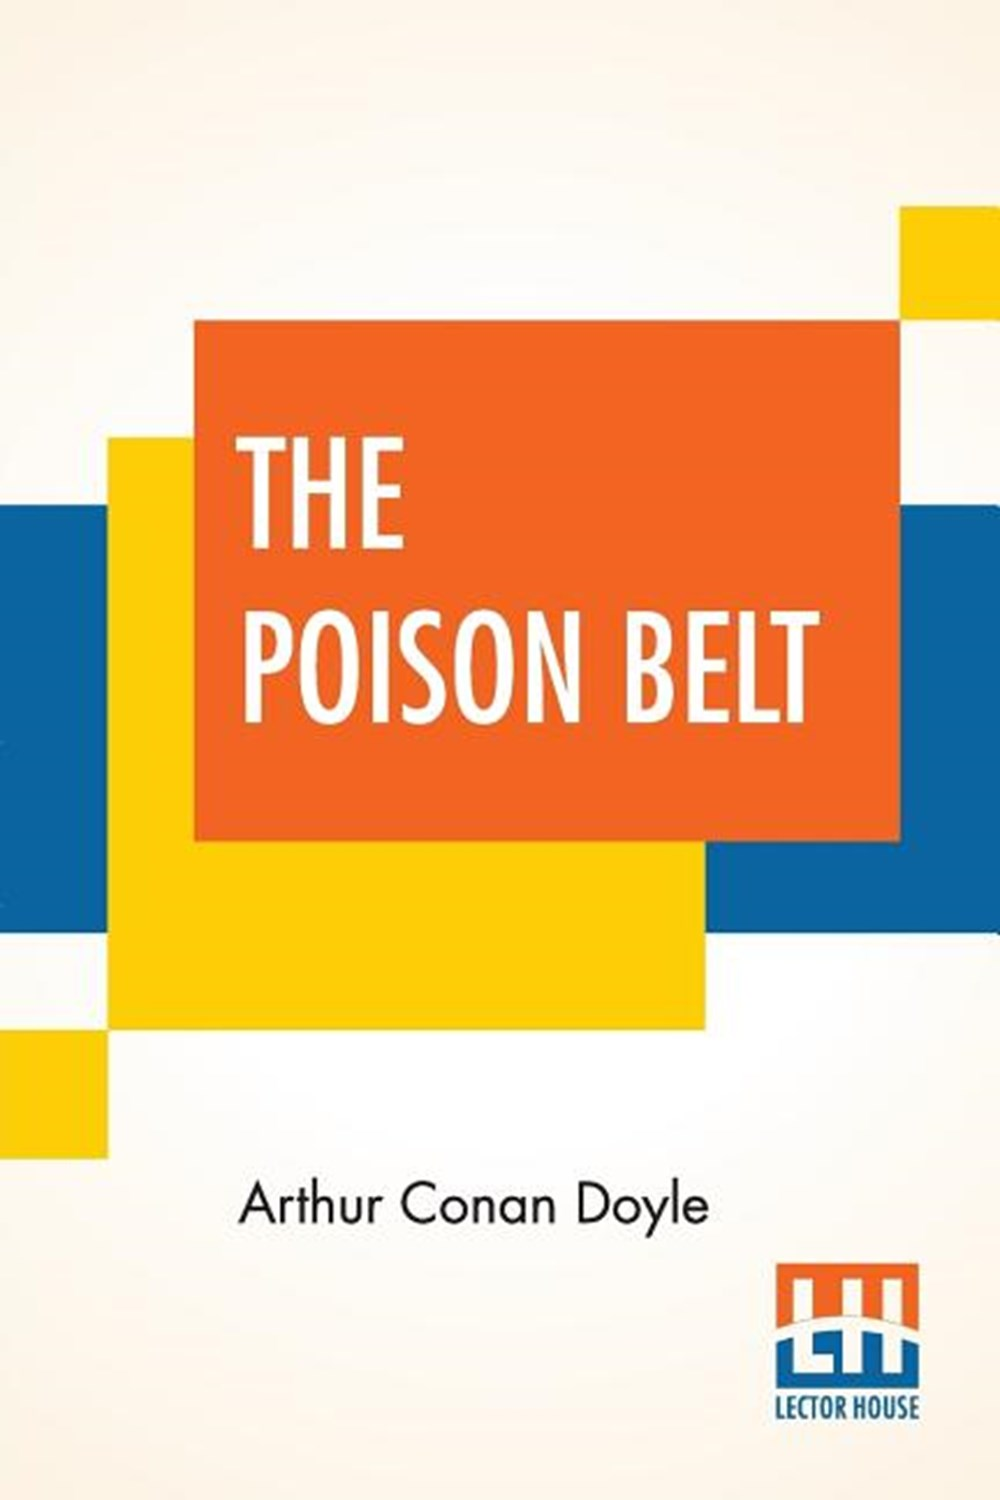 Poison Belt Being An Account Of Another Adventure Of Prof. George E. Challenger, Lord John Roxton, P